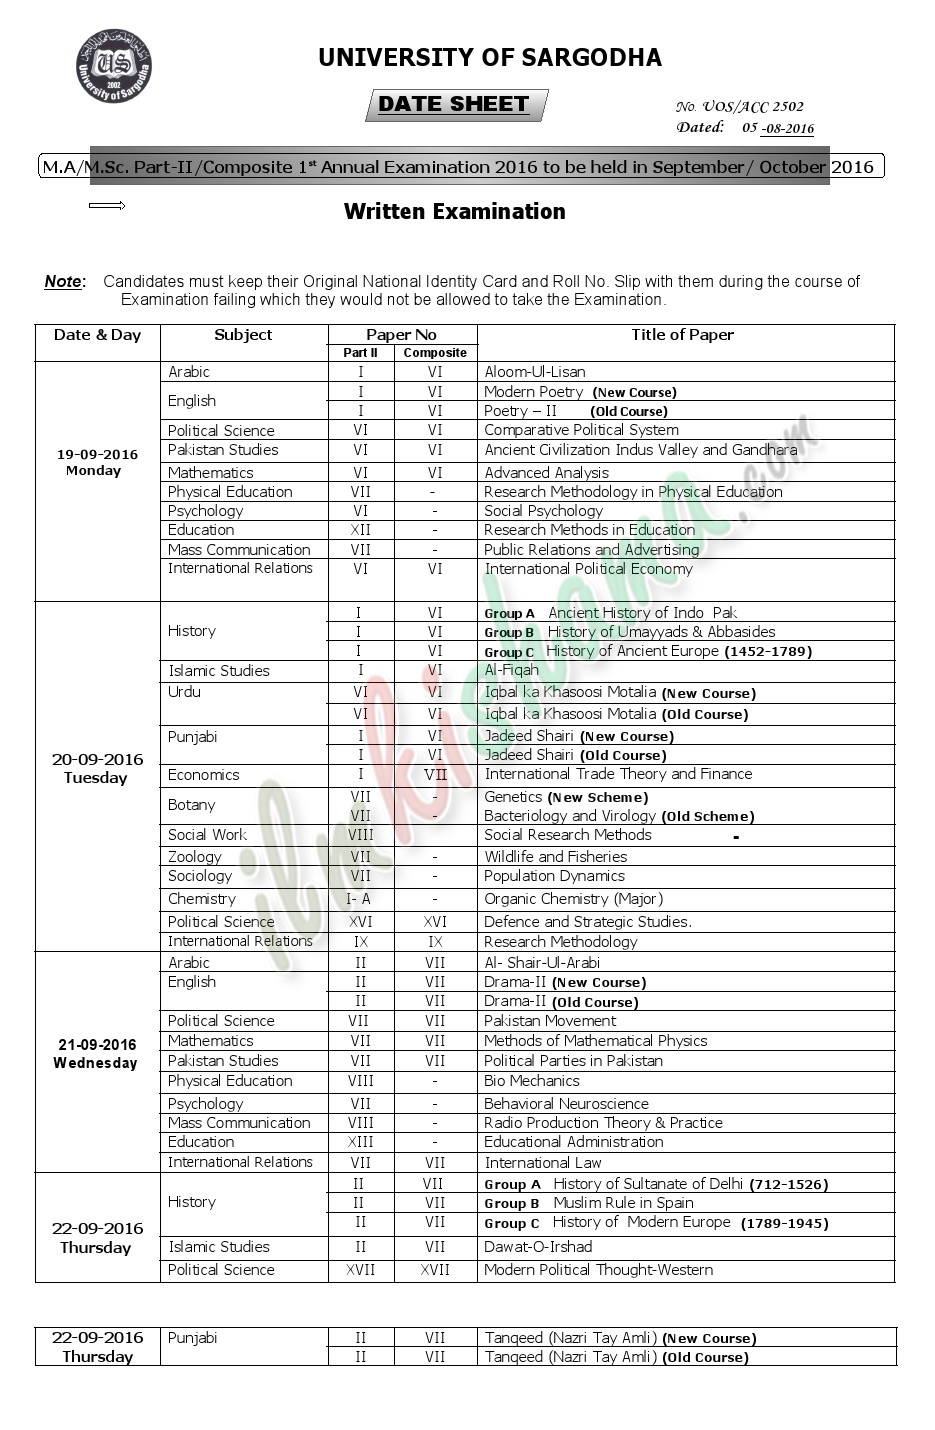 Date Sheet M.AM.Sc Part-II saragodha university 2016 1